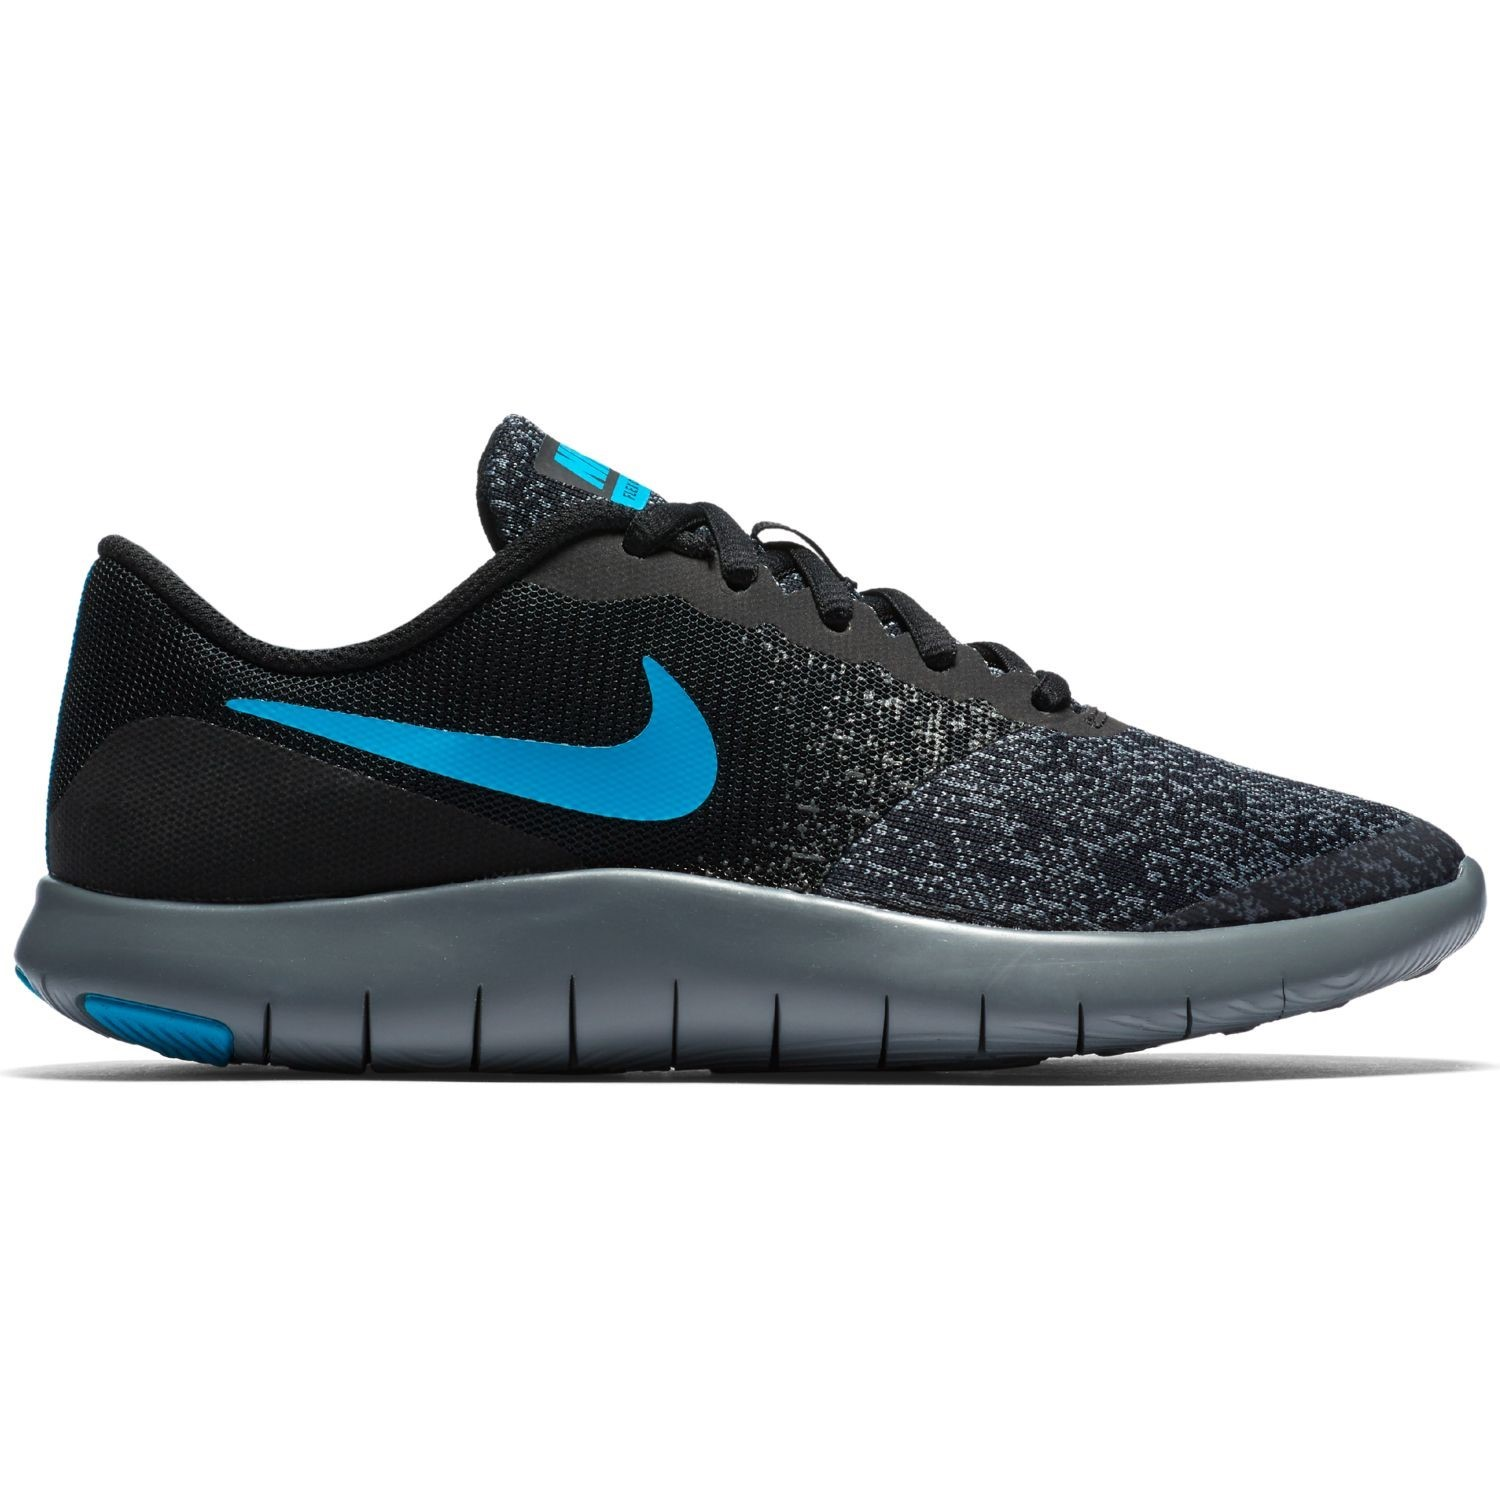 84af228cd57a Nike Flex Contact GS - Kids Boys Running Shoes - Black Neo Turquoise Dark